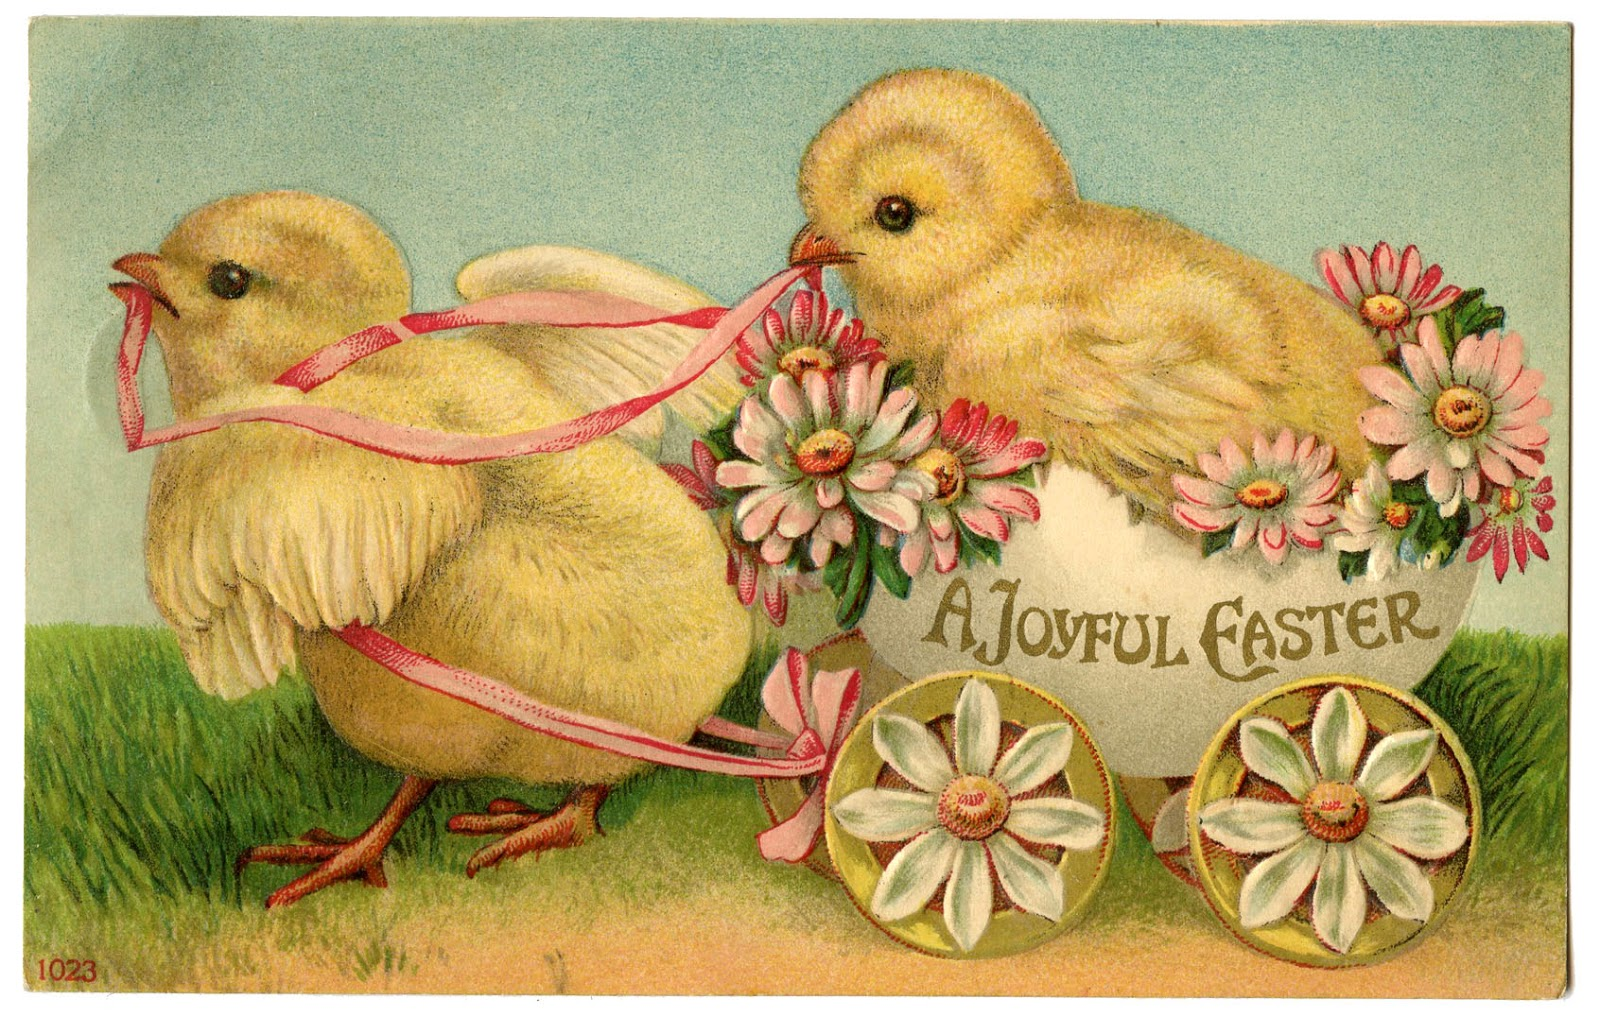 Doc624383 Victorian Easter Cards The odd world of Victorian – Victorian Easter Cards